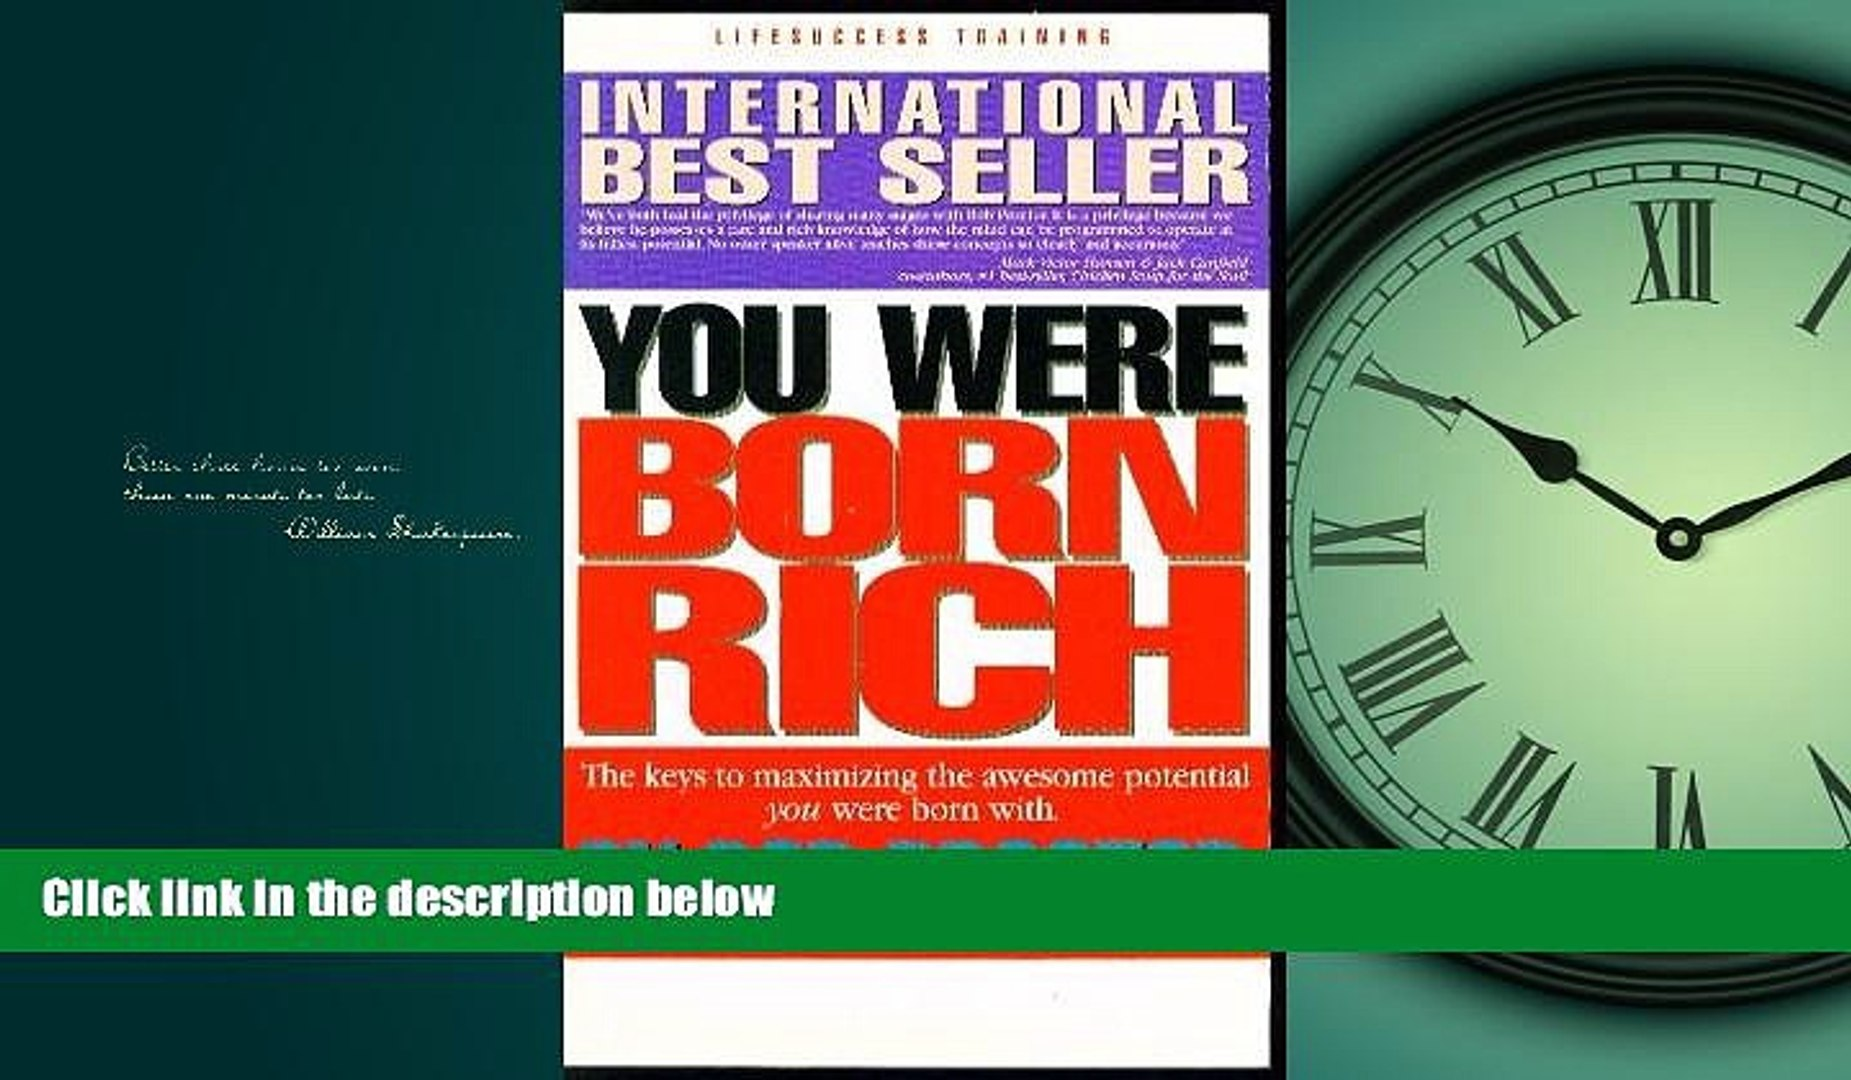 For you You Were Born Rich